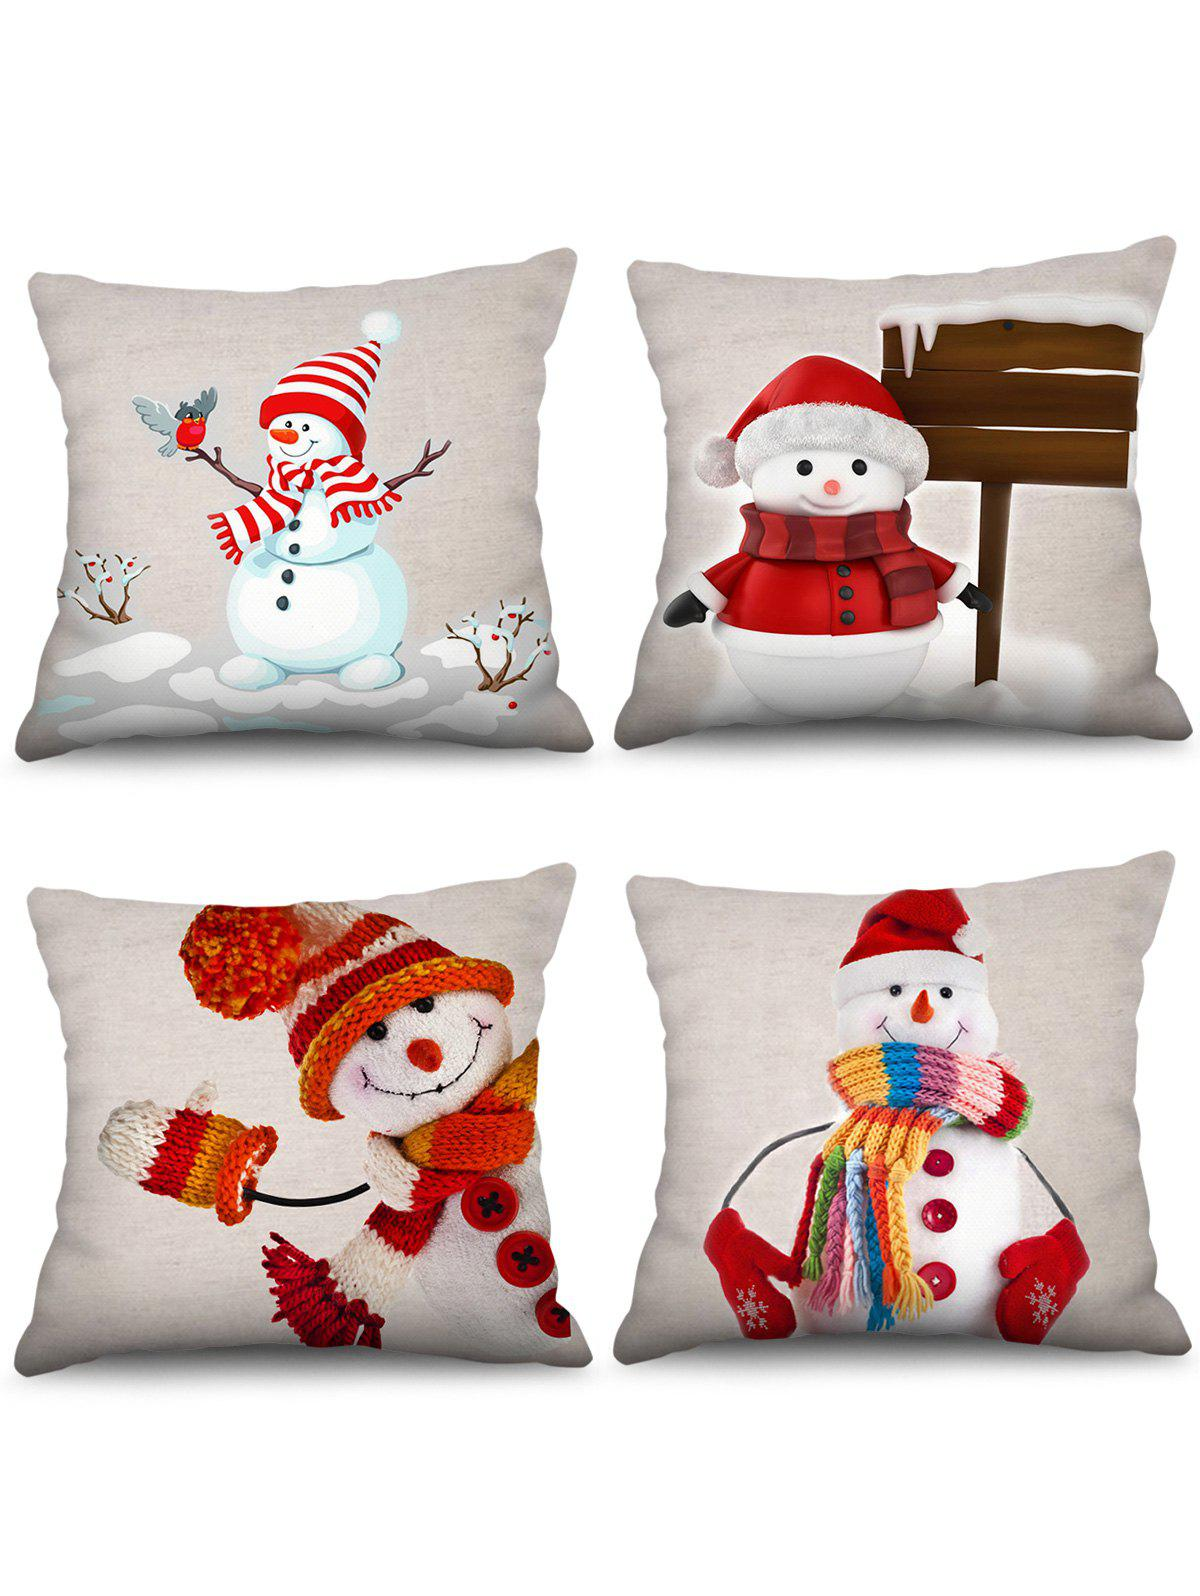 Affordable 4PCS Snowman Christmas Theme Printed Pillowcases